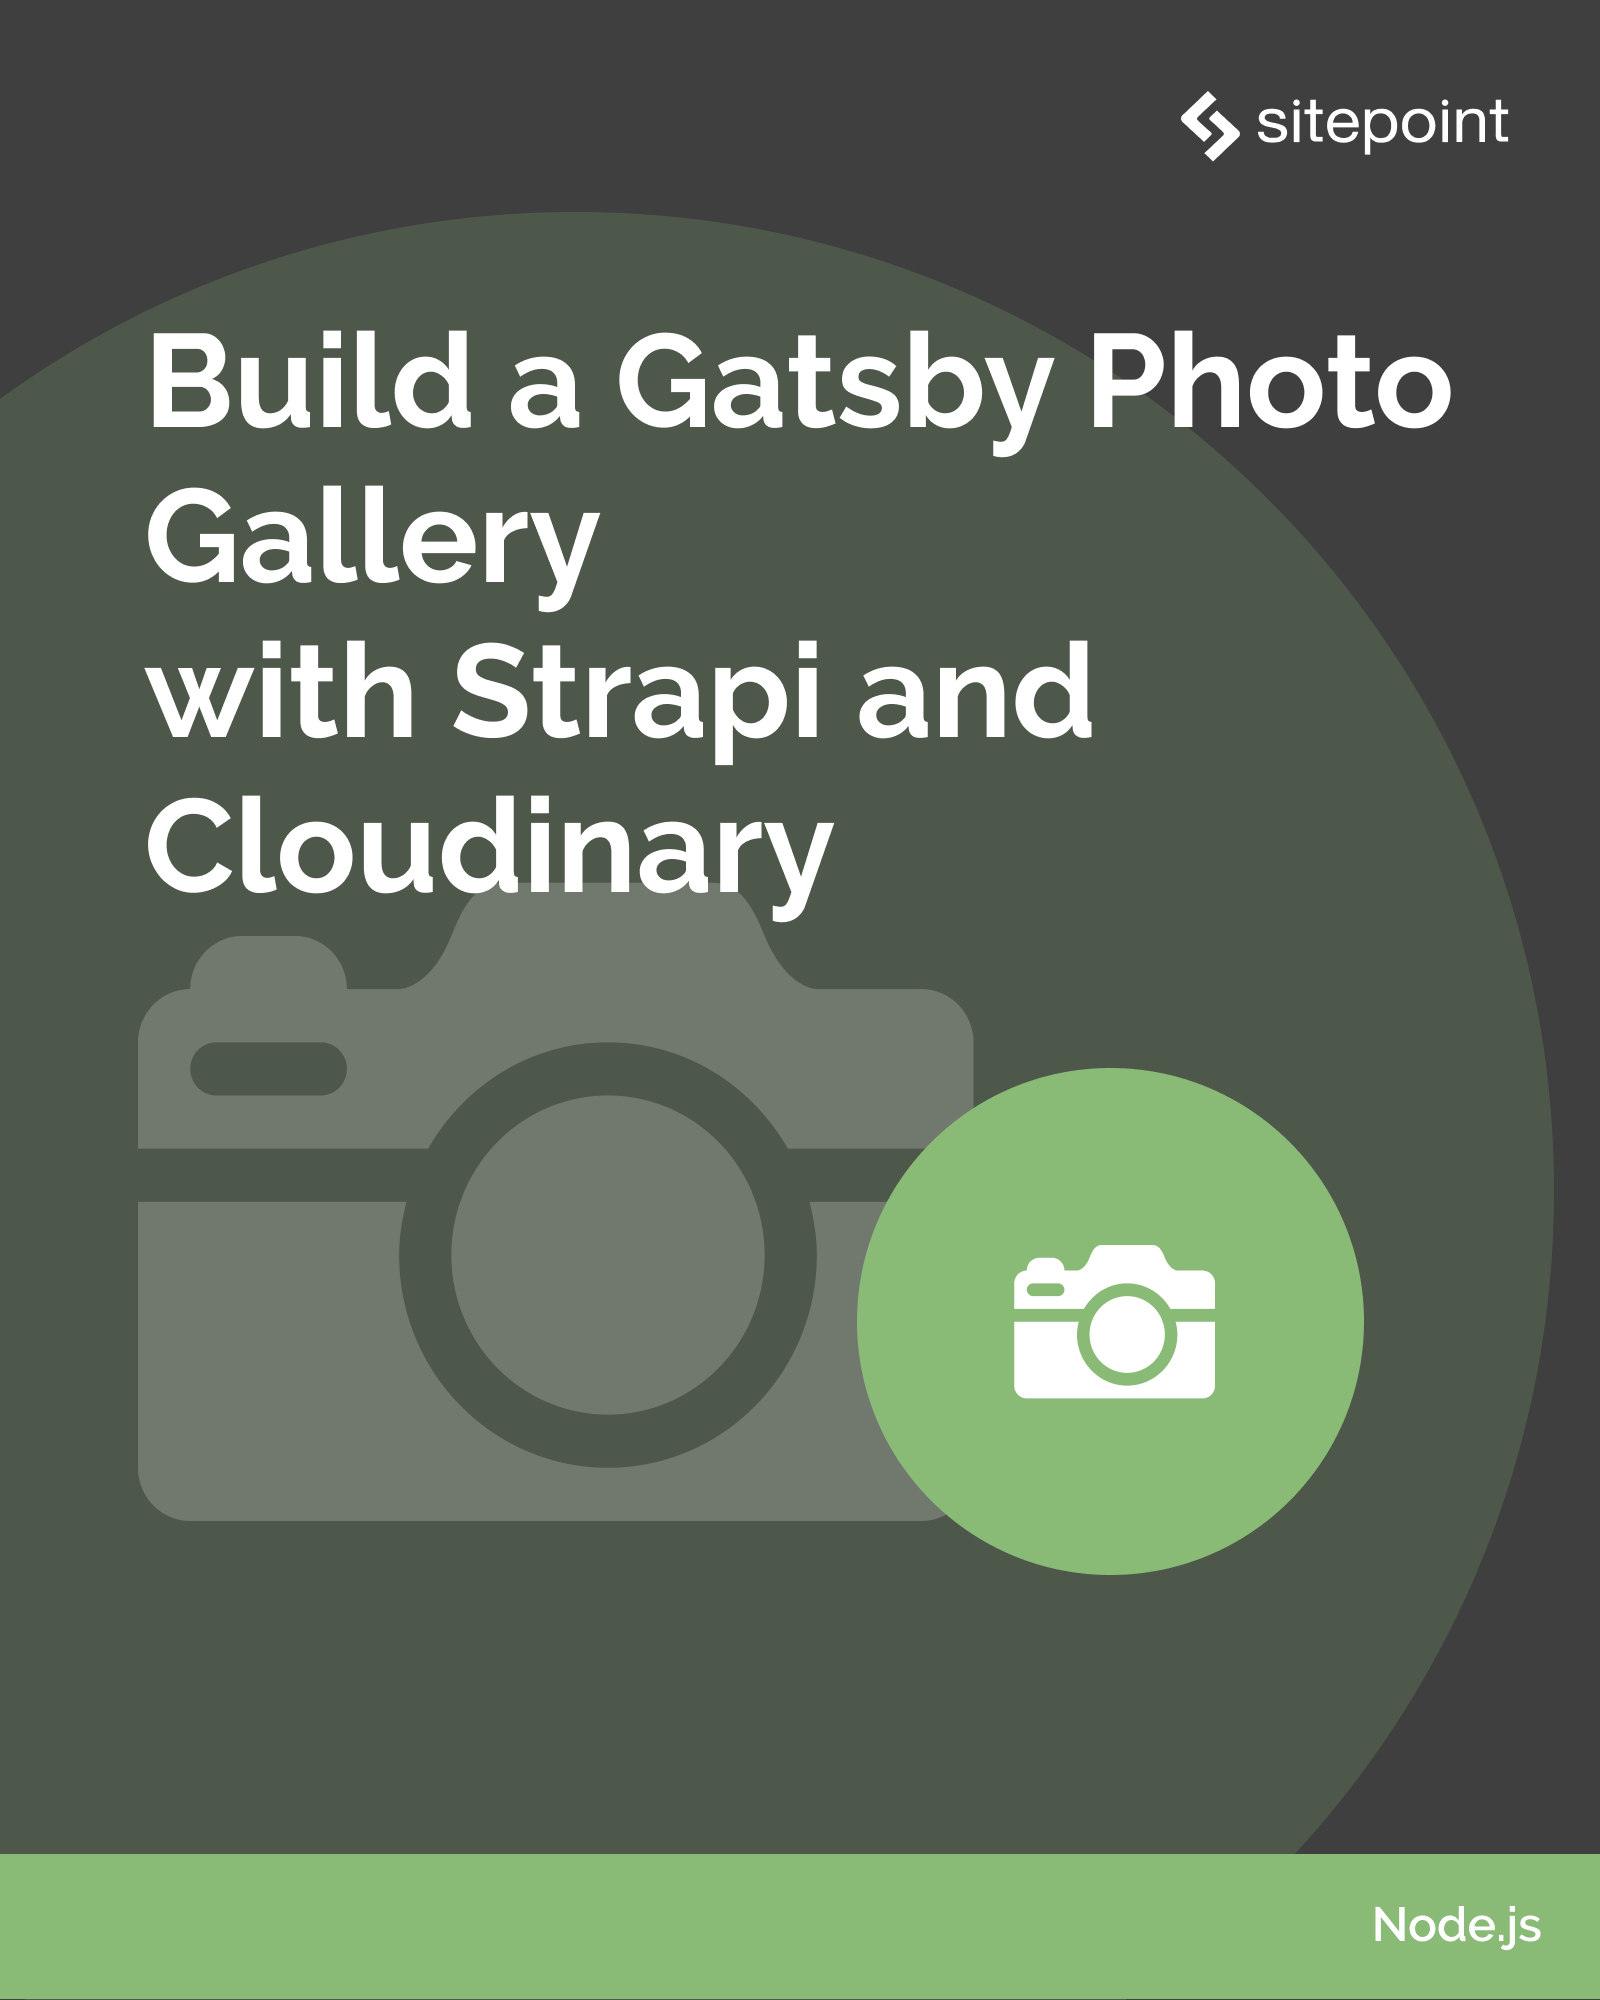 Build a Gatsby Photo Gallery with Strapi and Cloudinary